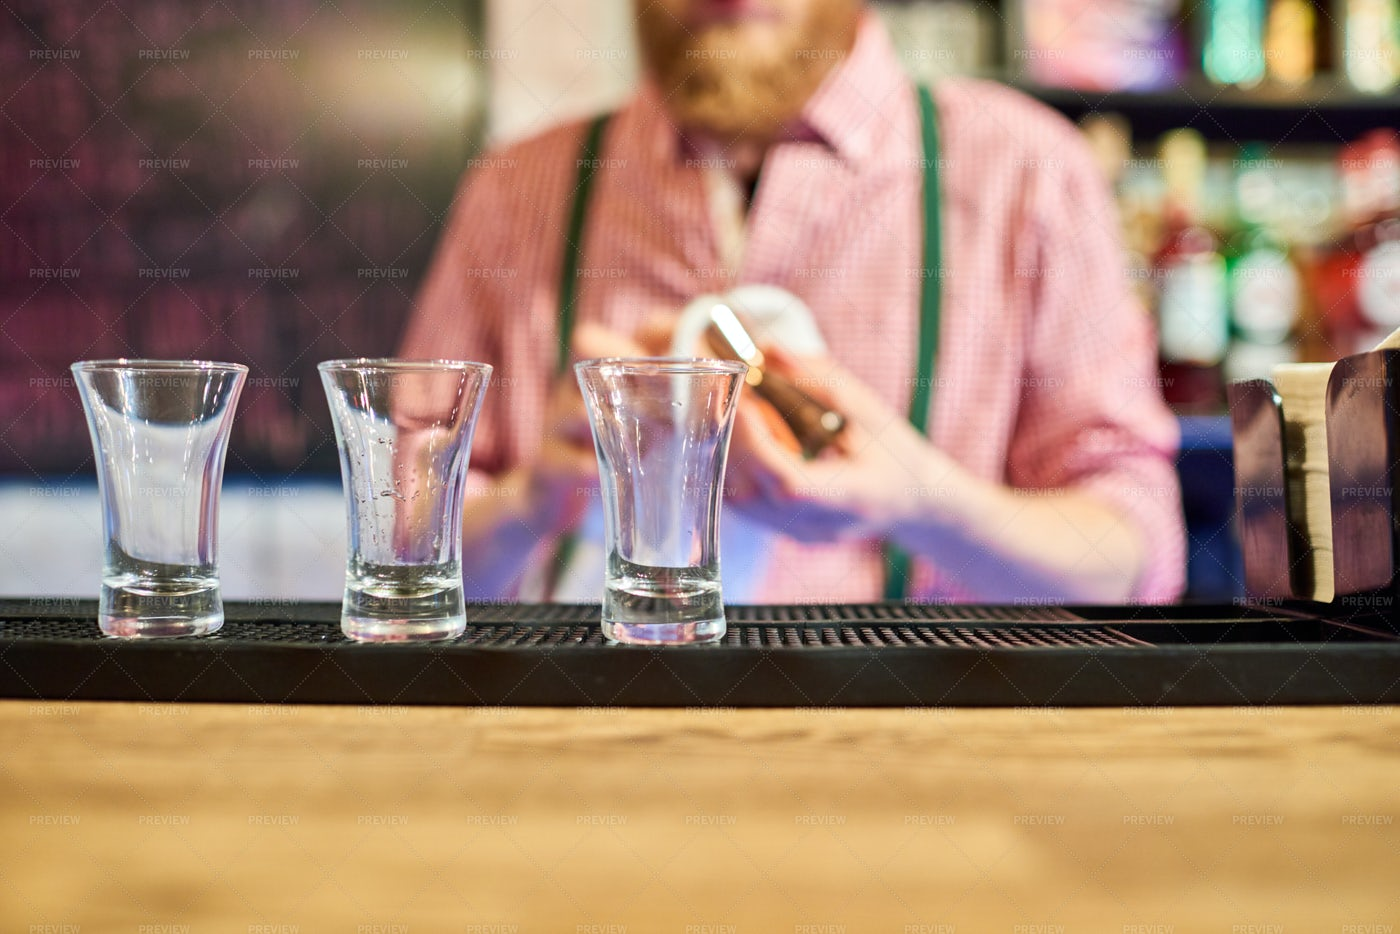 Bartender Cleaning Up At Bar...: Stock Photos